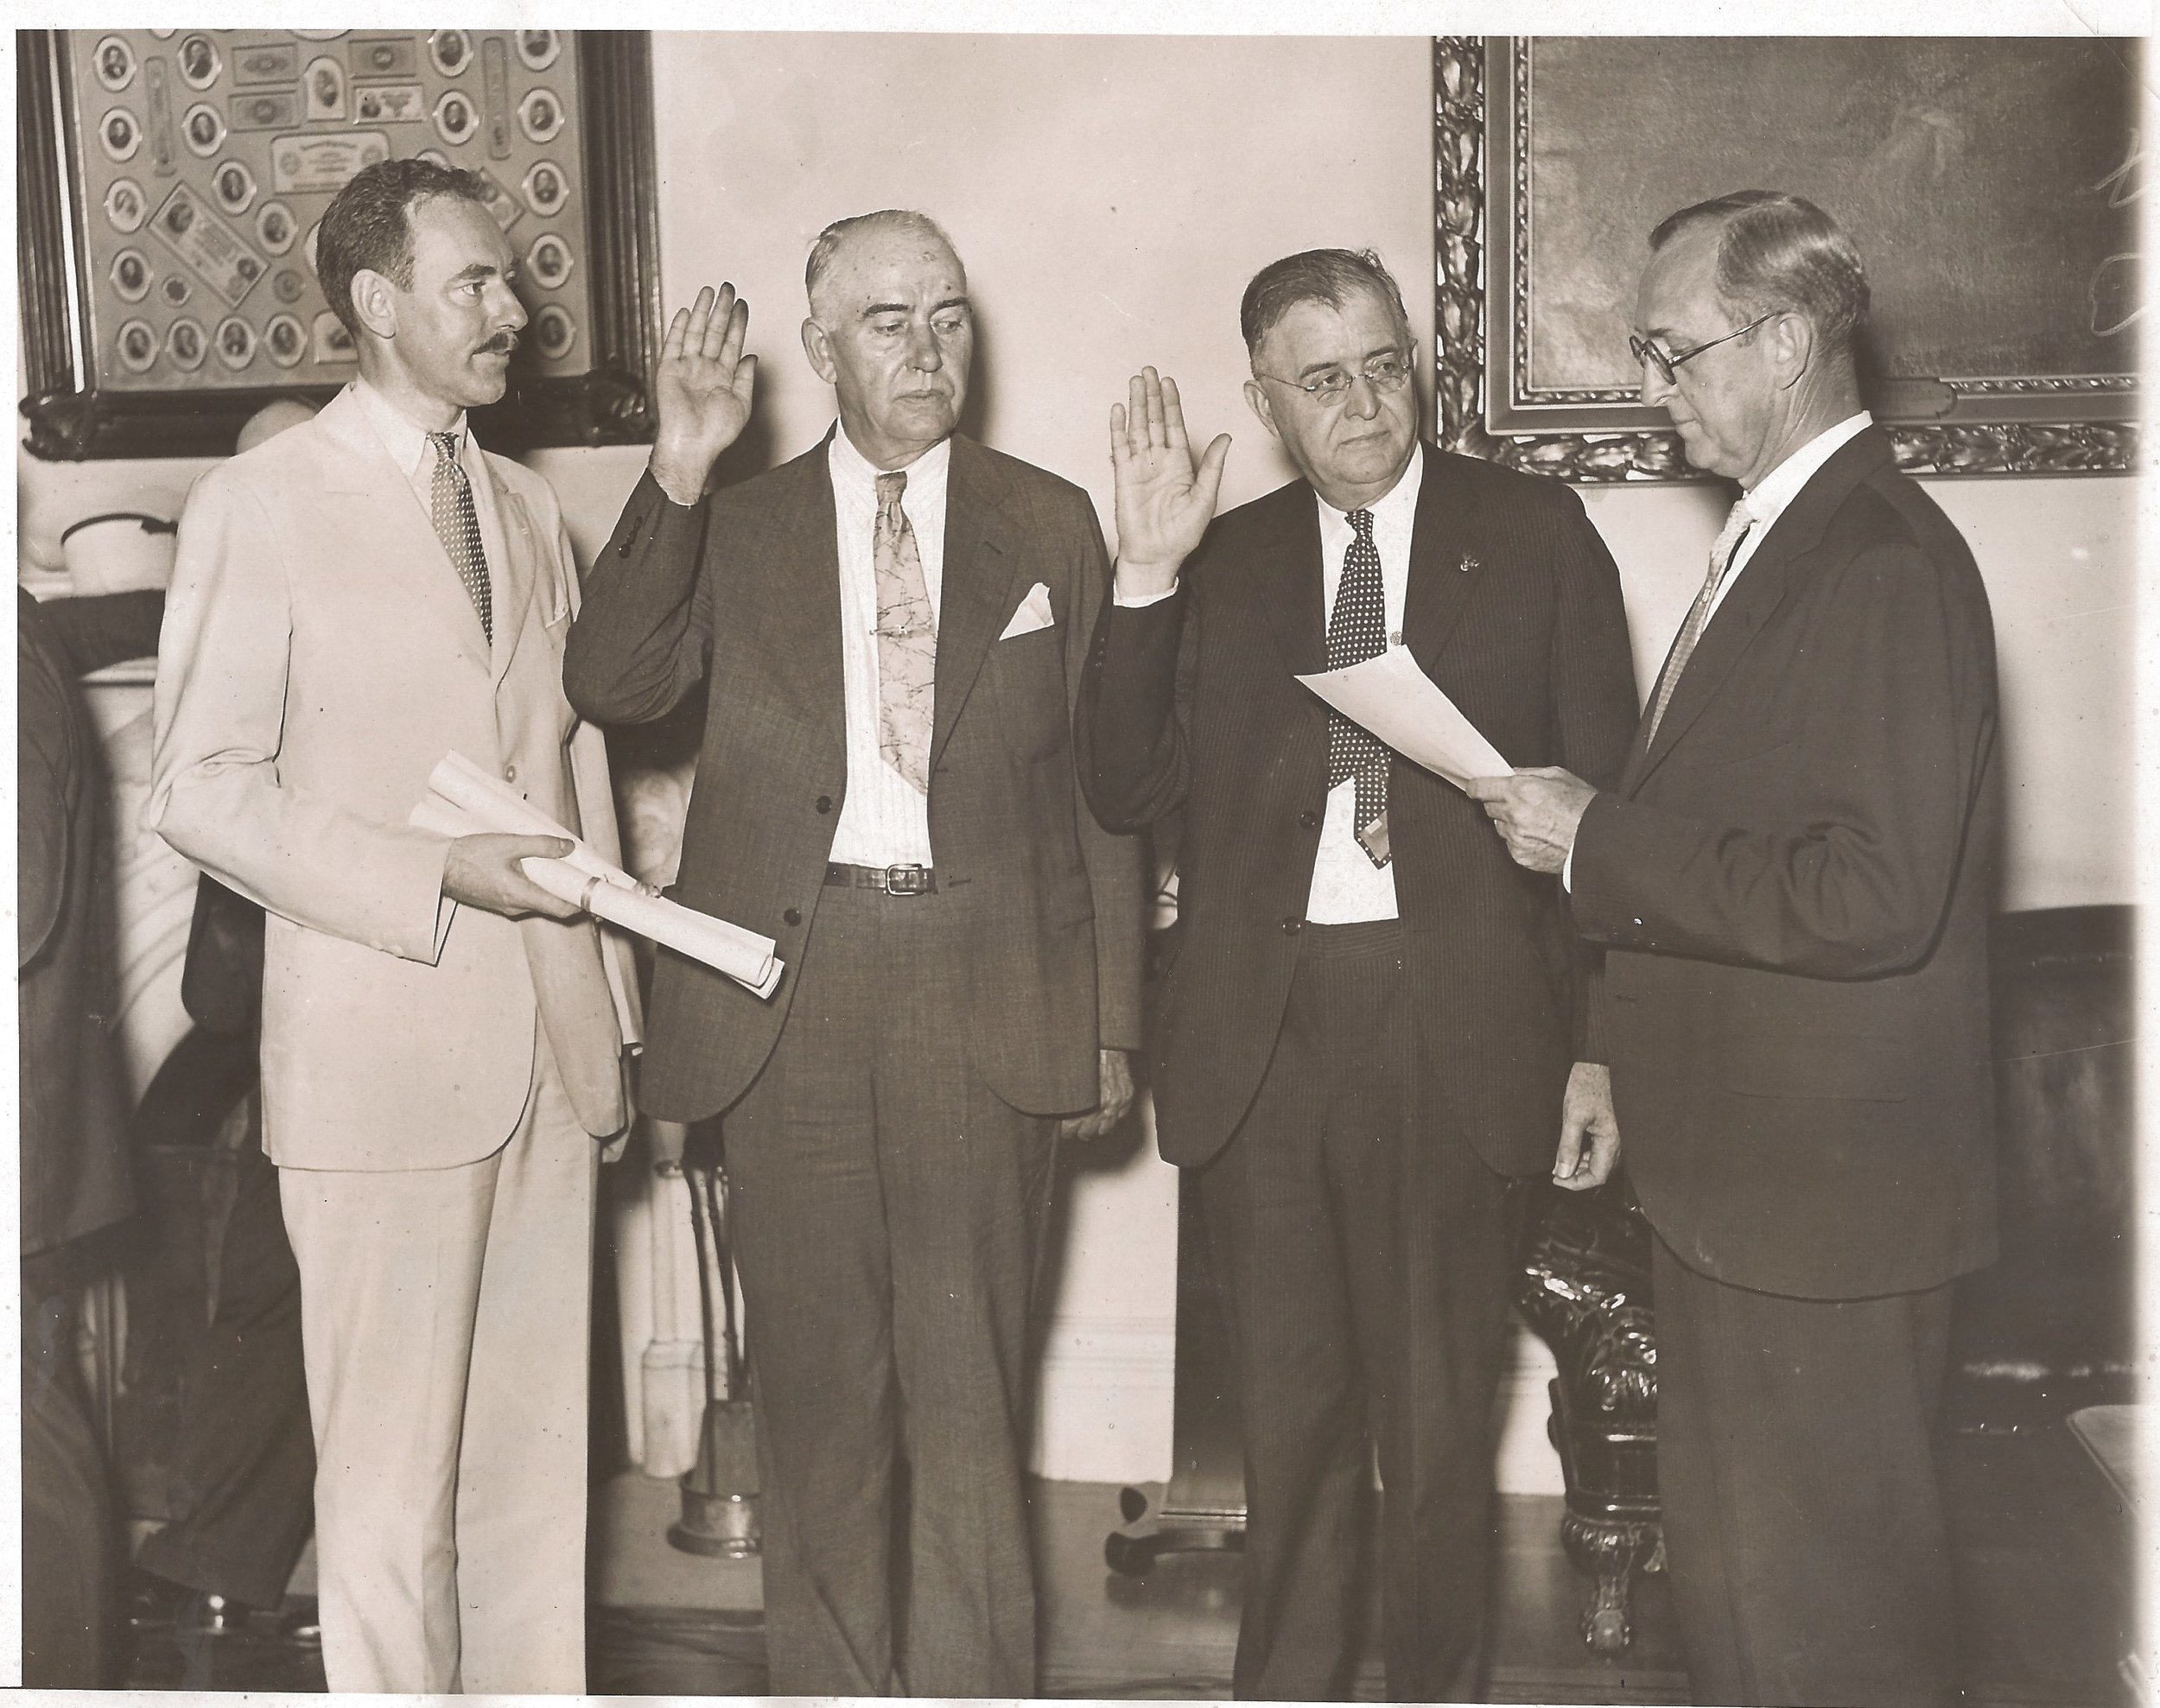 I wrote my first book in 2004 about my great-grandfather, William W. Durbin, pictured here in 1933 being sworn-in as Register of the United States Treasury. Future Secretary of State Dean Acheson, stands to the far left as witness to the ceremony.